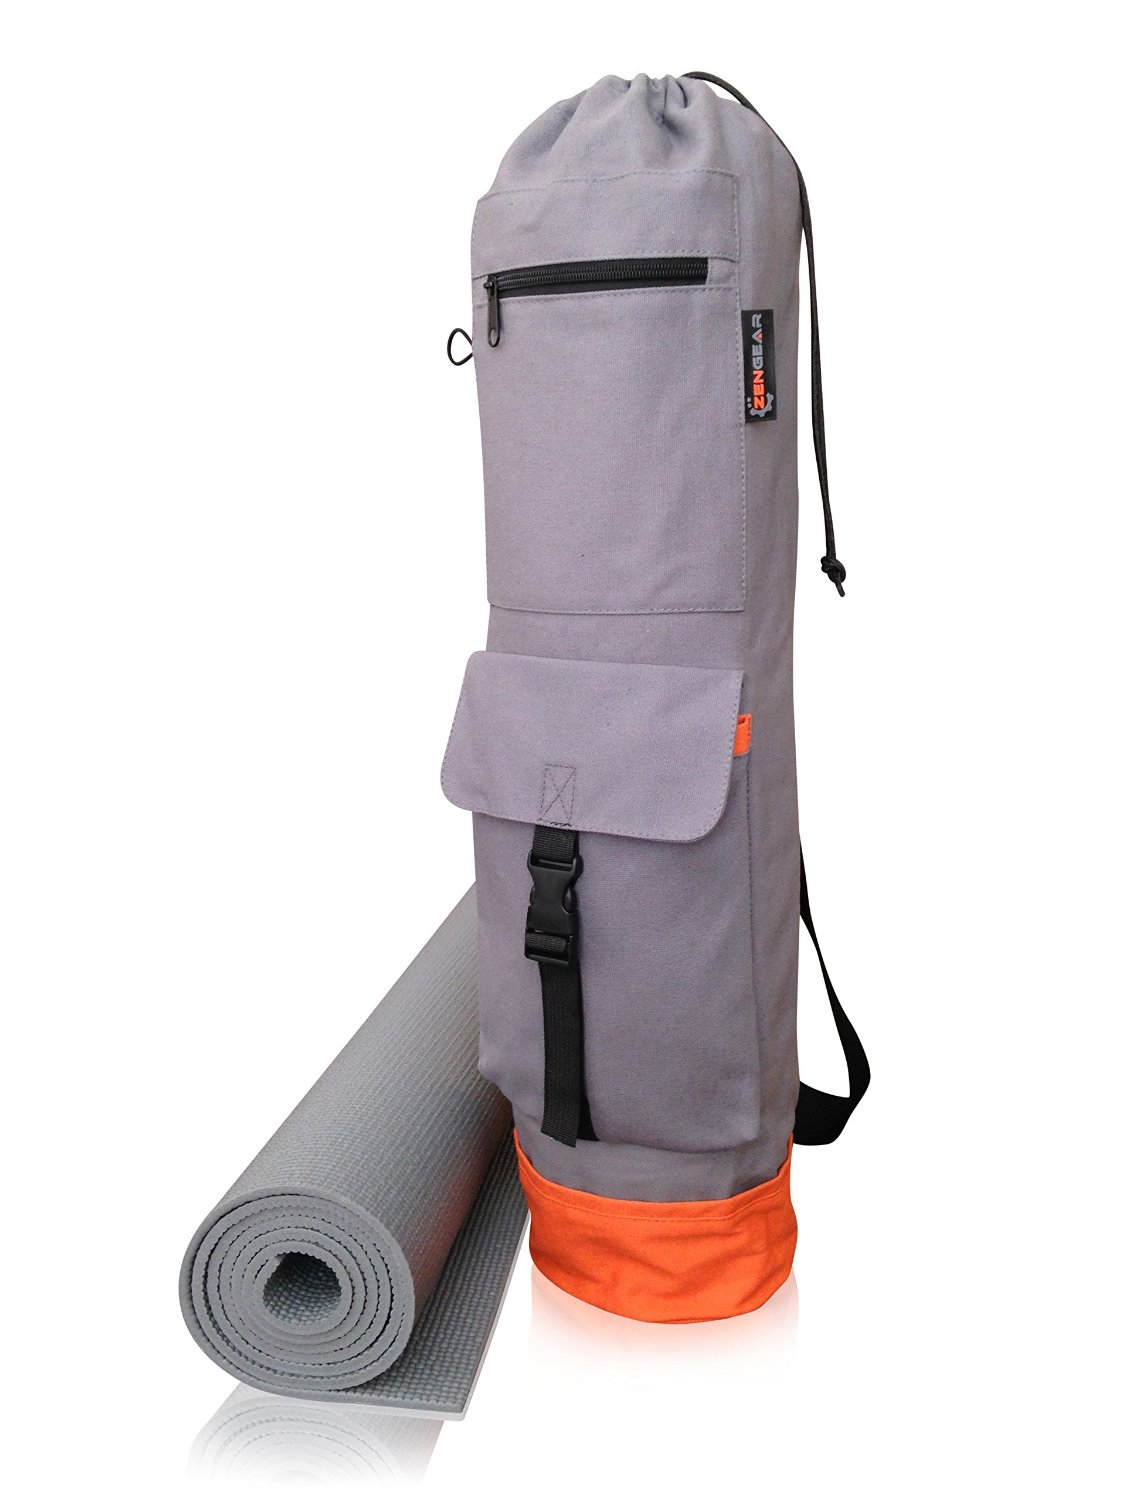 ZenGear Yoga Starter Set with Mat with Bag